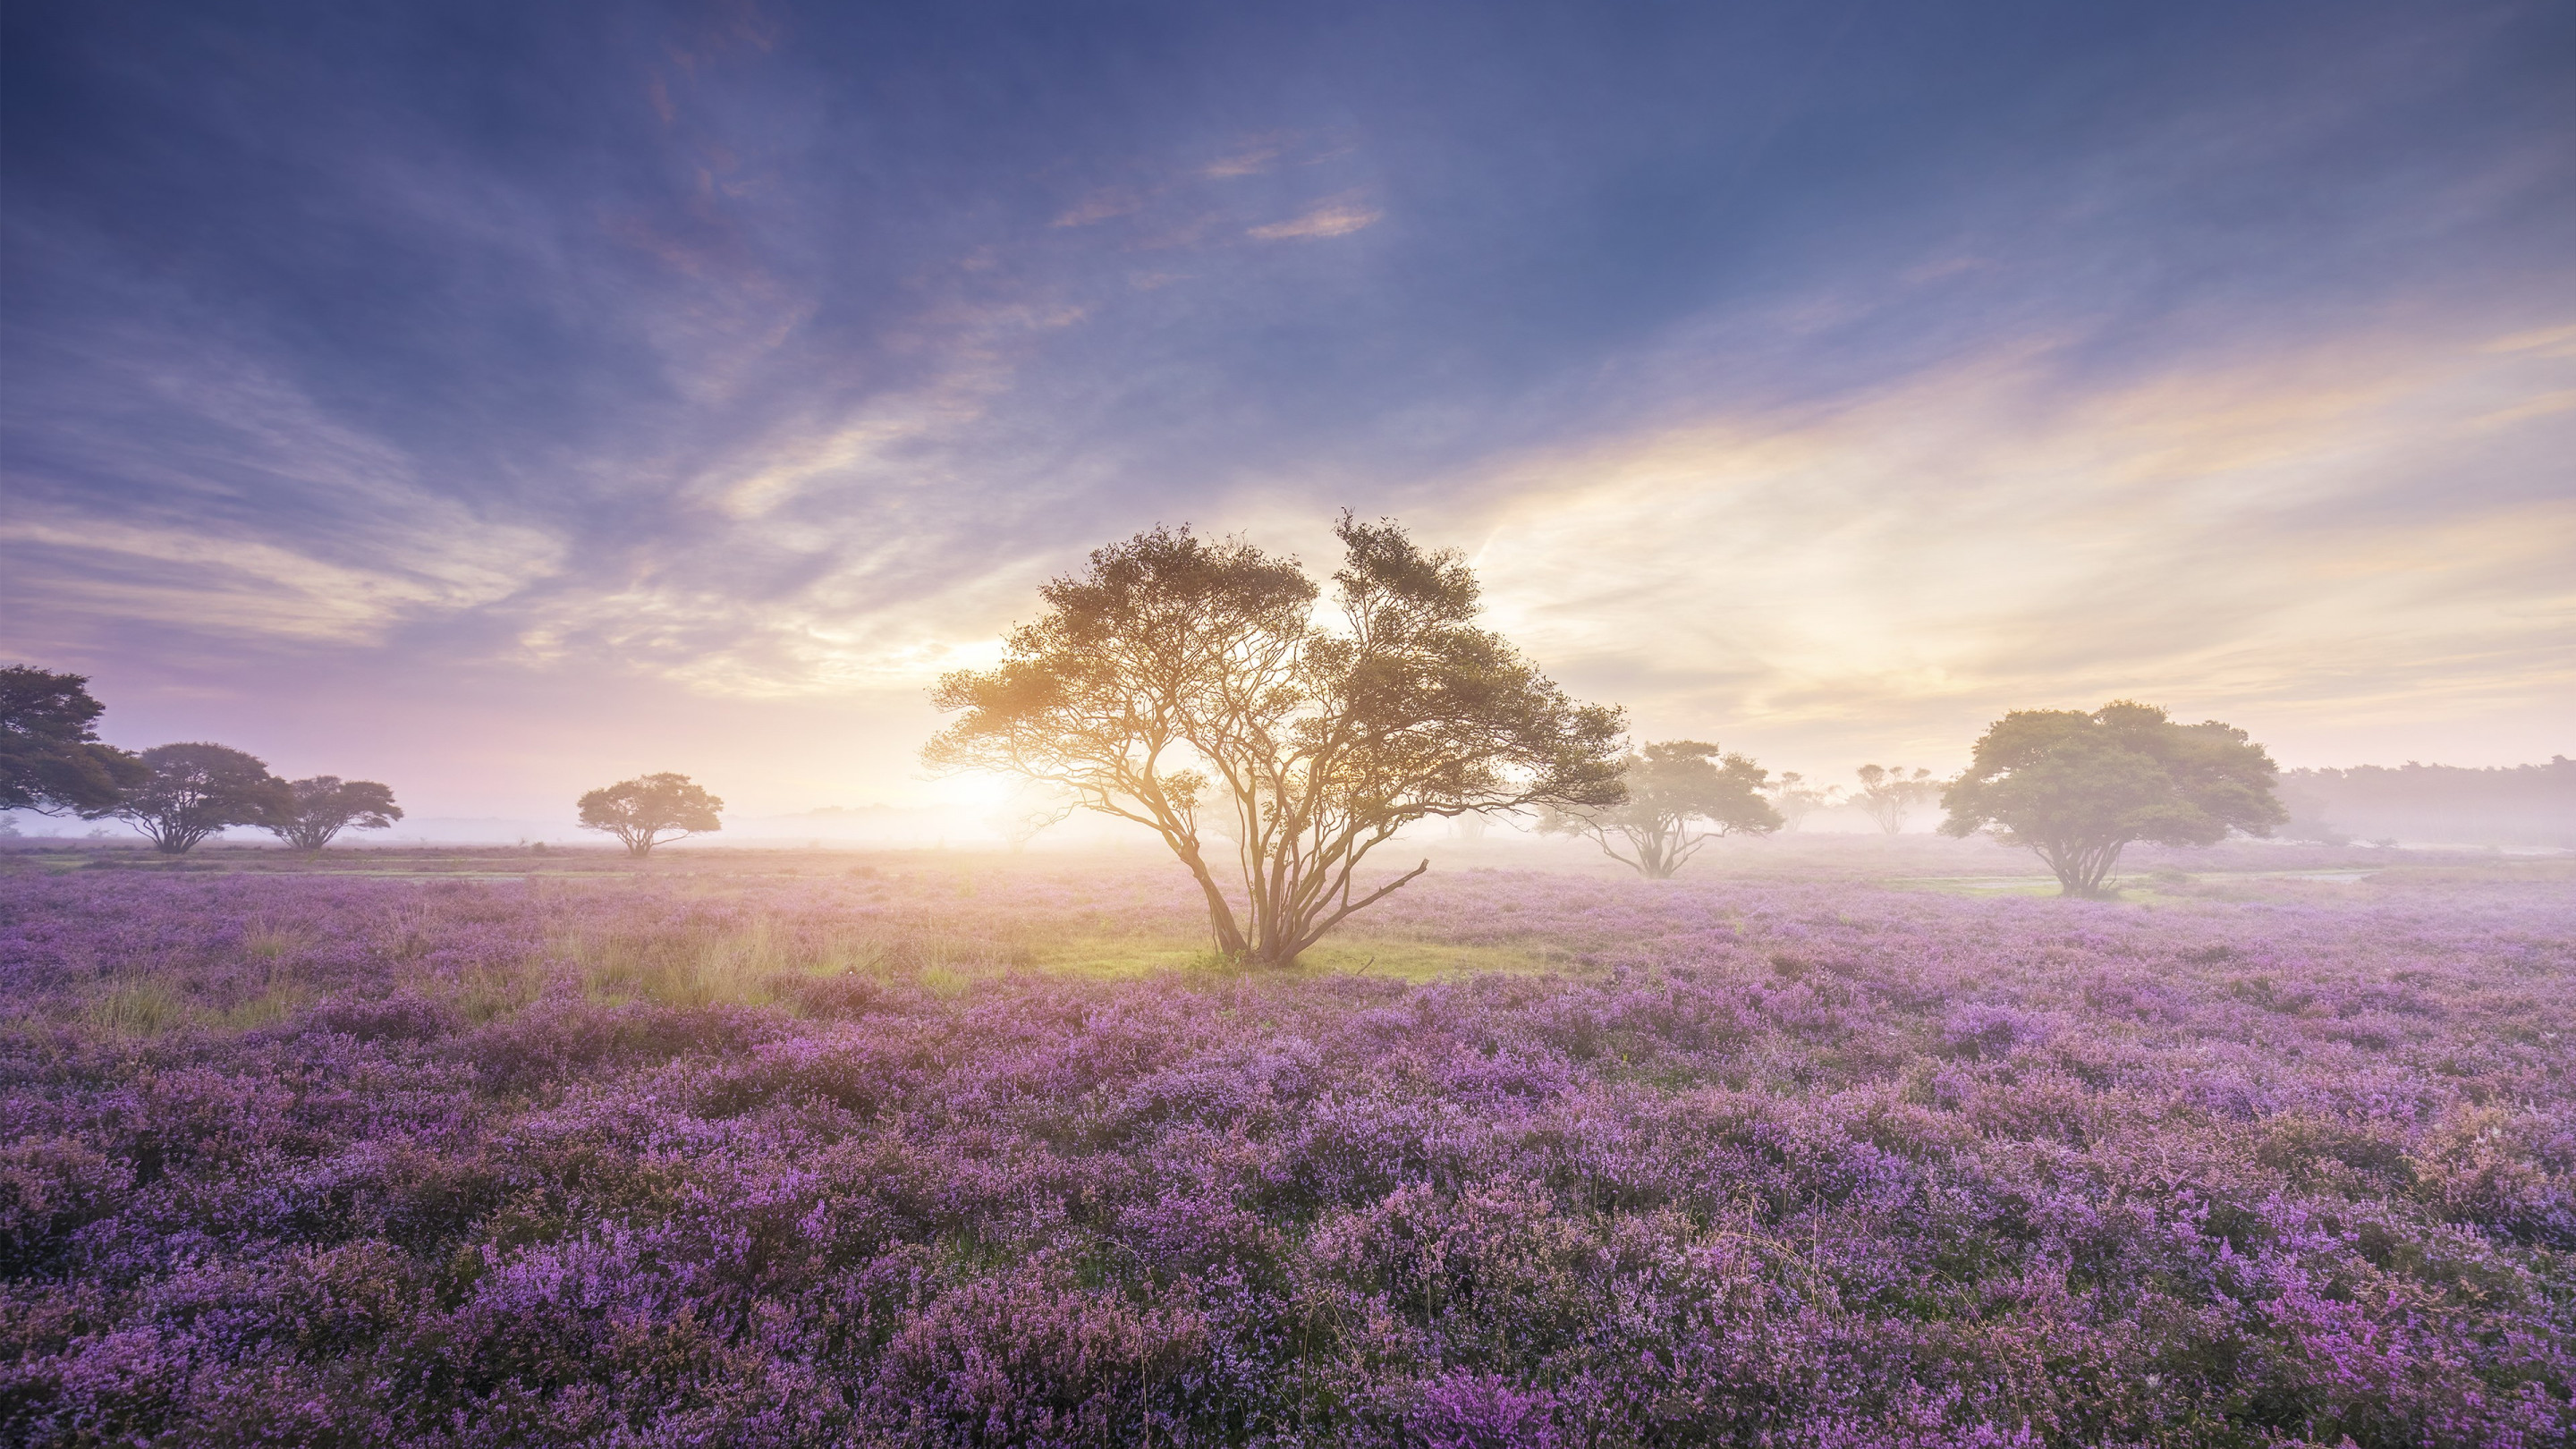 Bloom on the fields of Zuiderheide wallpaper 2880x1620